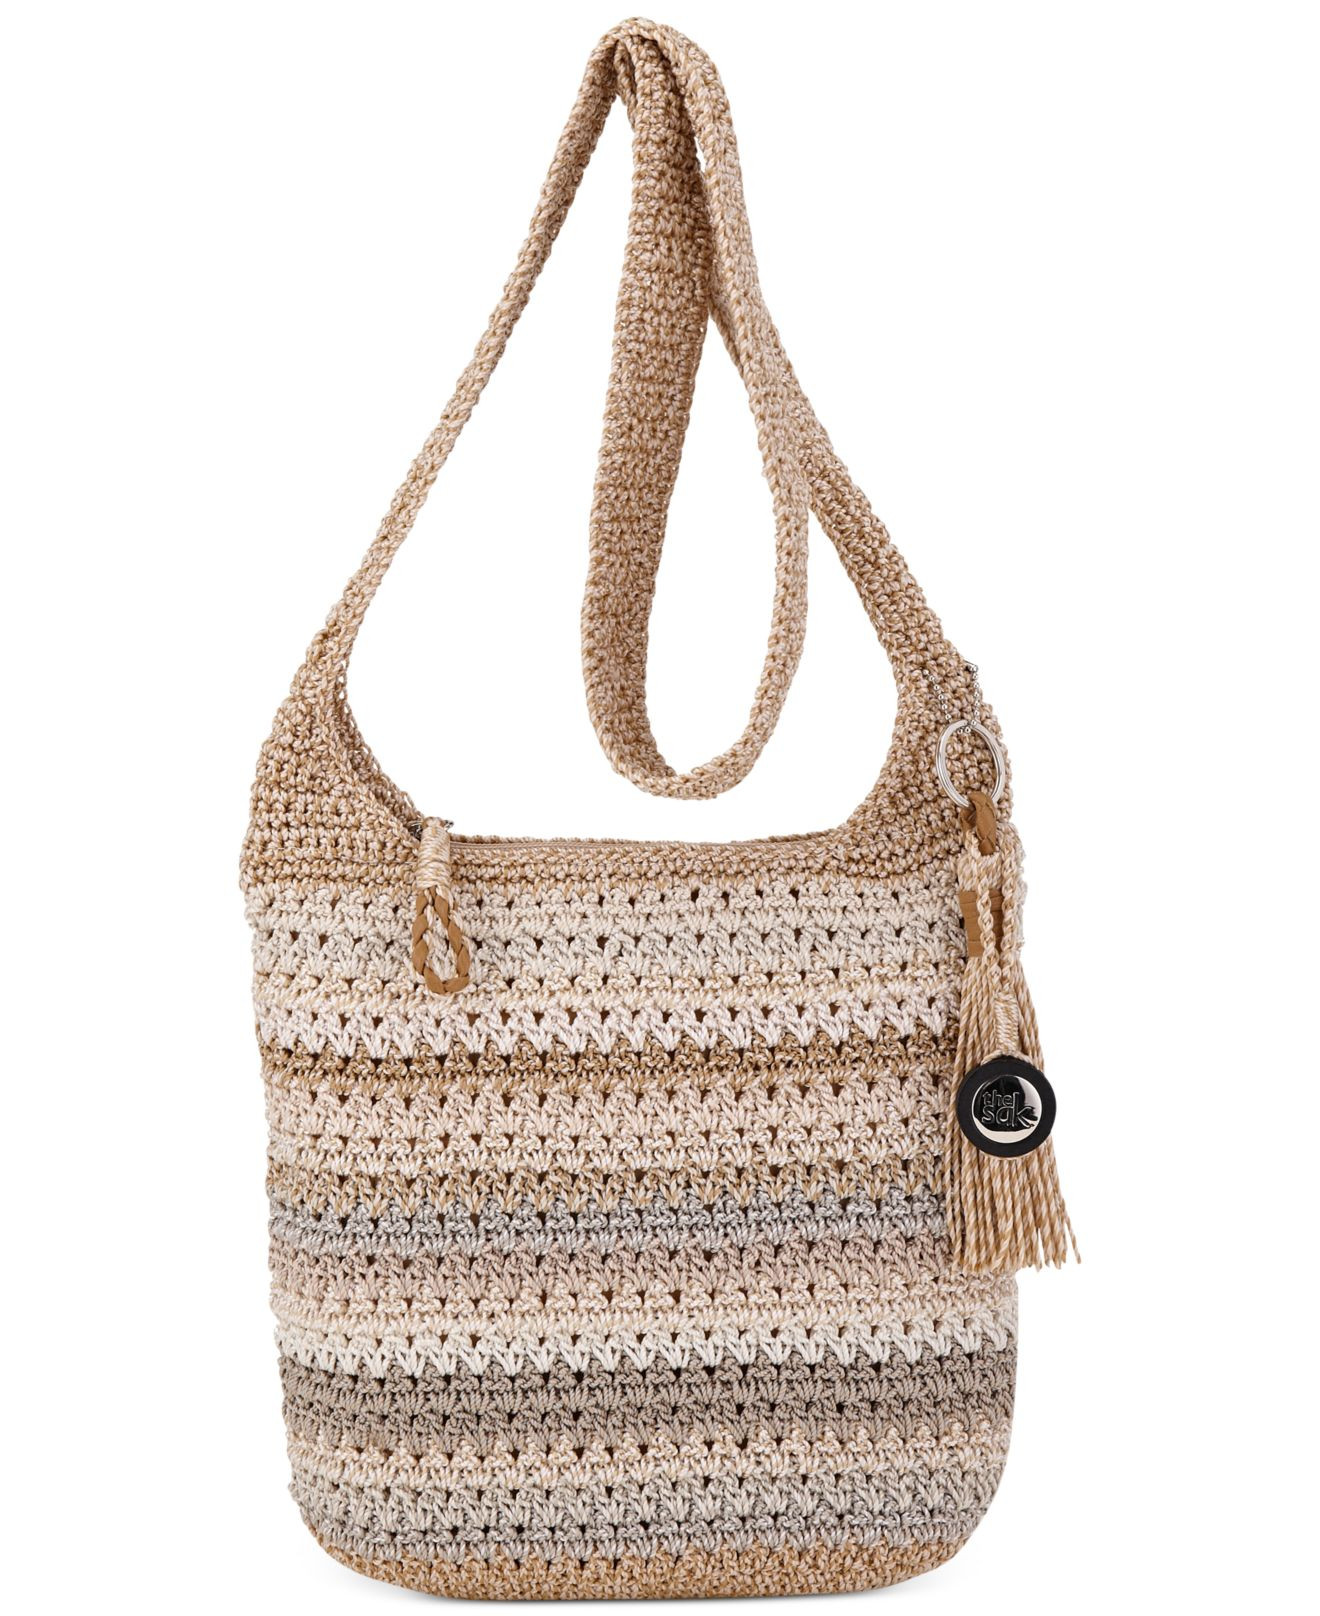 The Sak Crochet Beautiful Lyst the Sak Casual Classics Crochet Crossbody In Natural Of The Sak Crochet Awesome the Sak Black Crochet Cross Body Shoulder Bag Purse Handbag